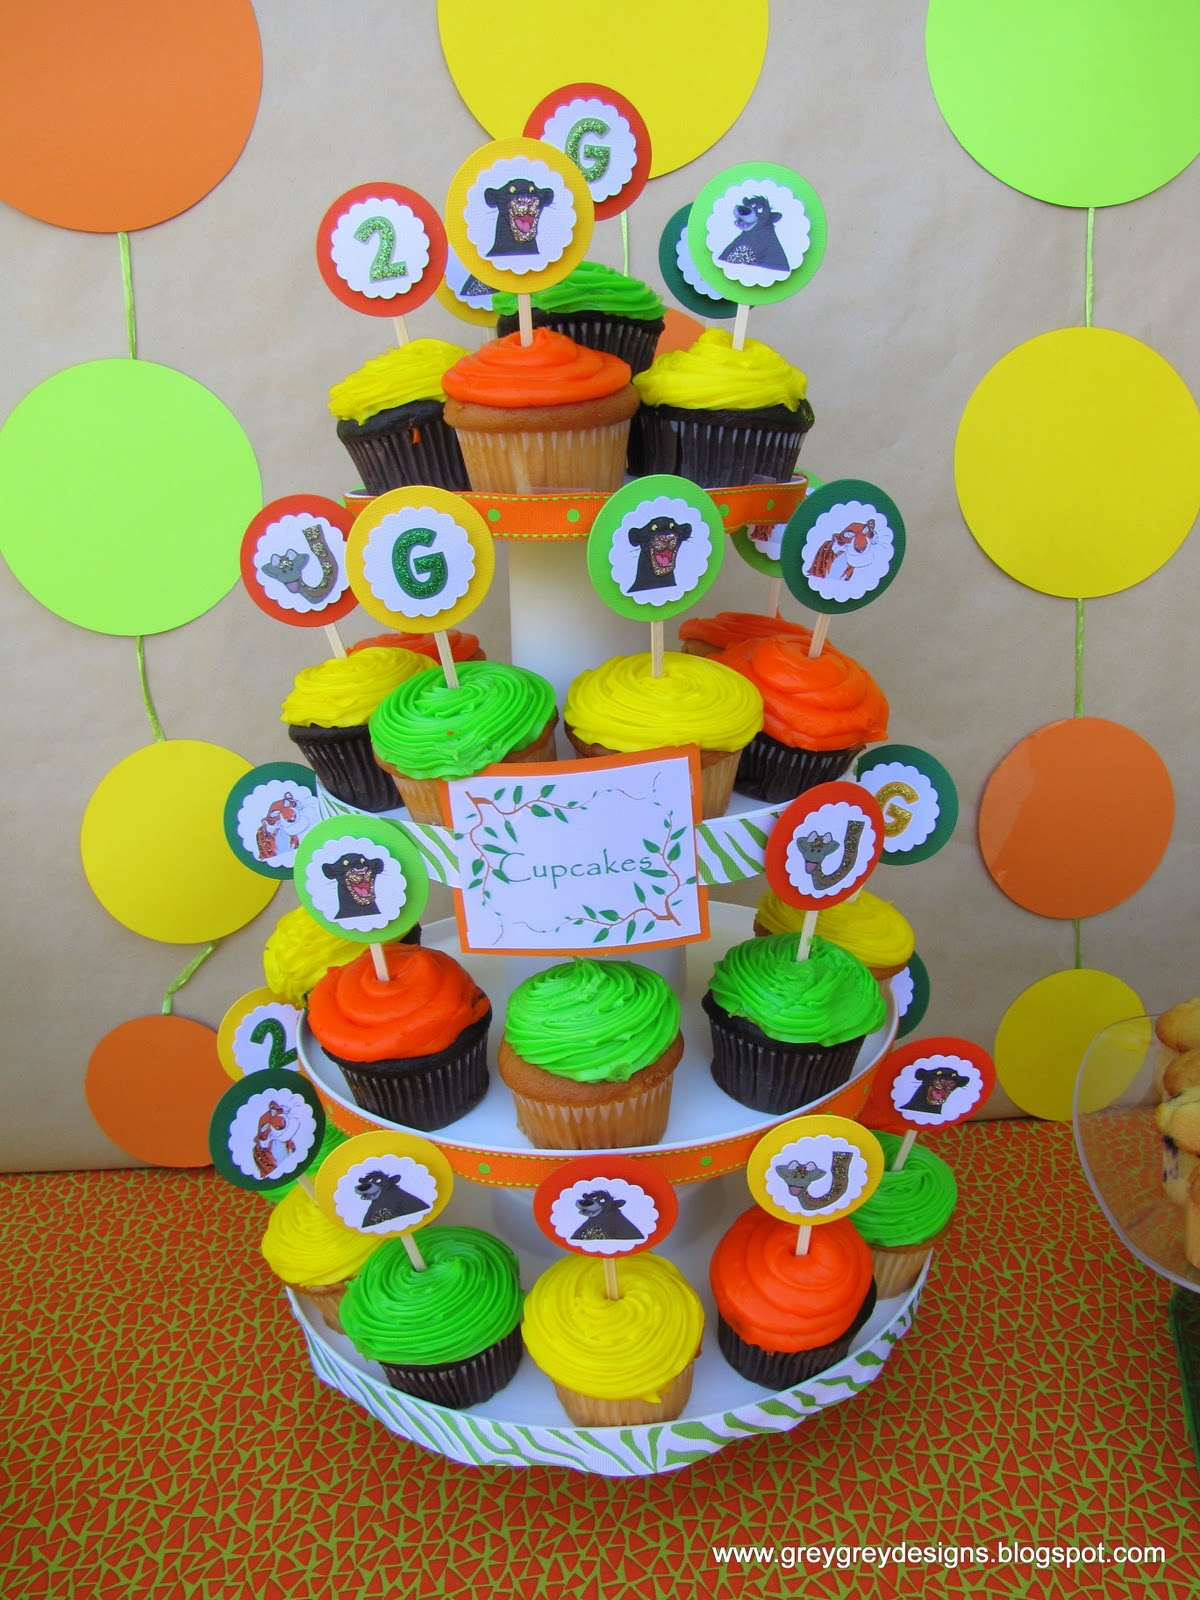 GreyGrey Designs Grants Jungle Book 2nd Birthday Party